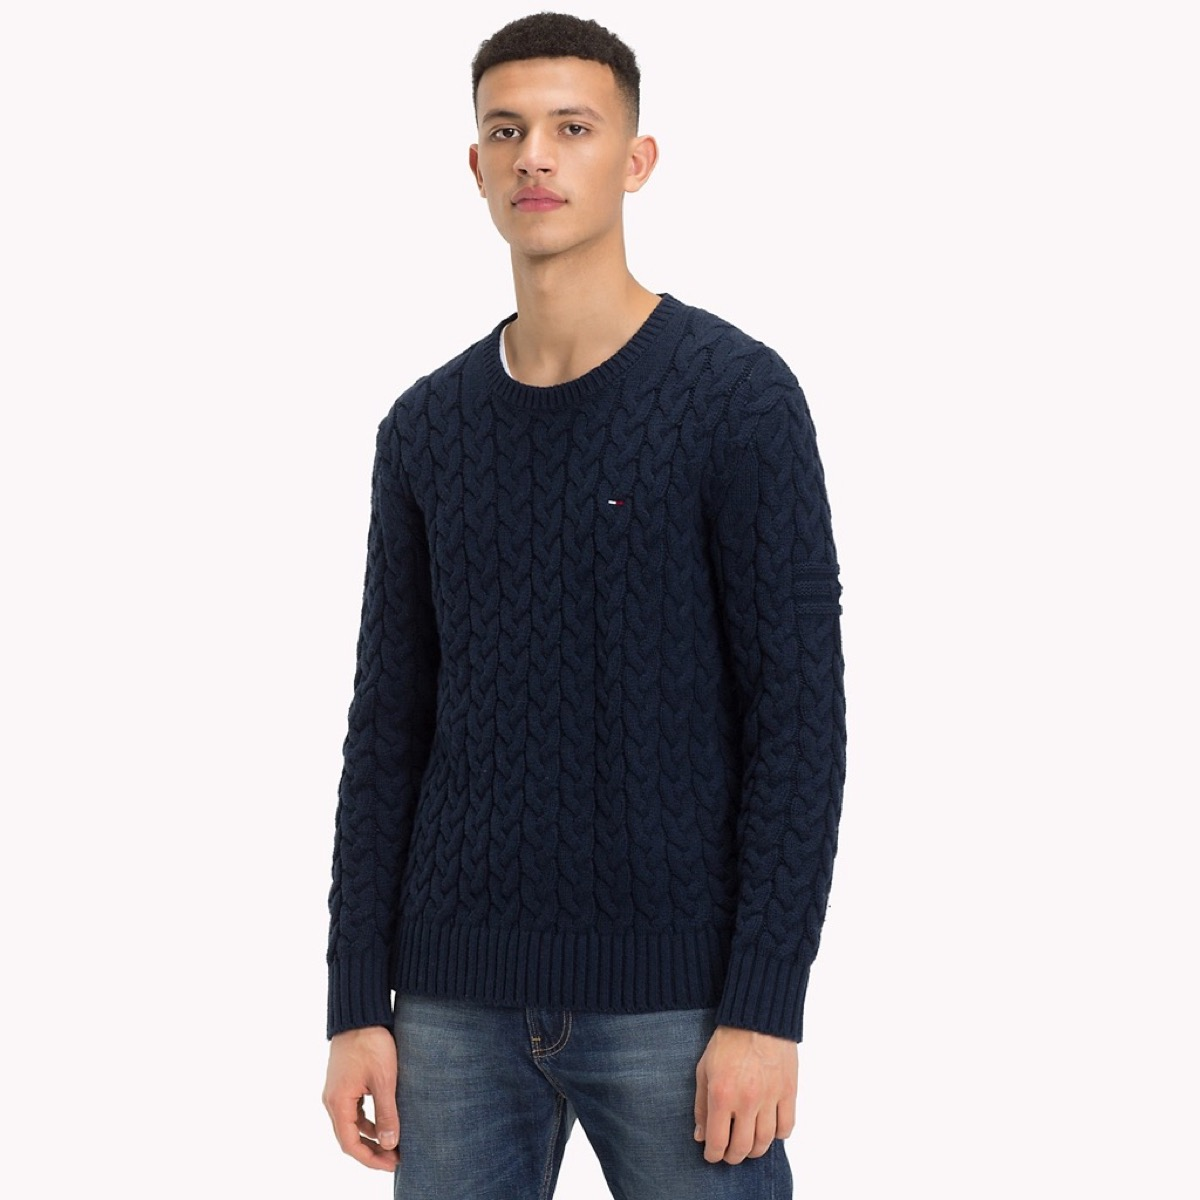 young man in blue sweater